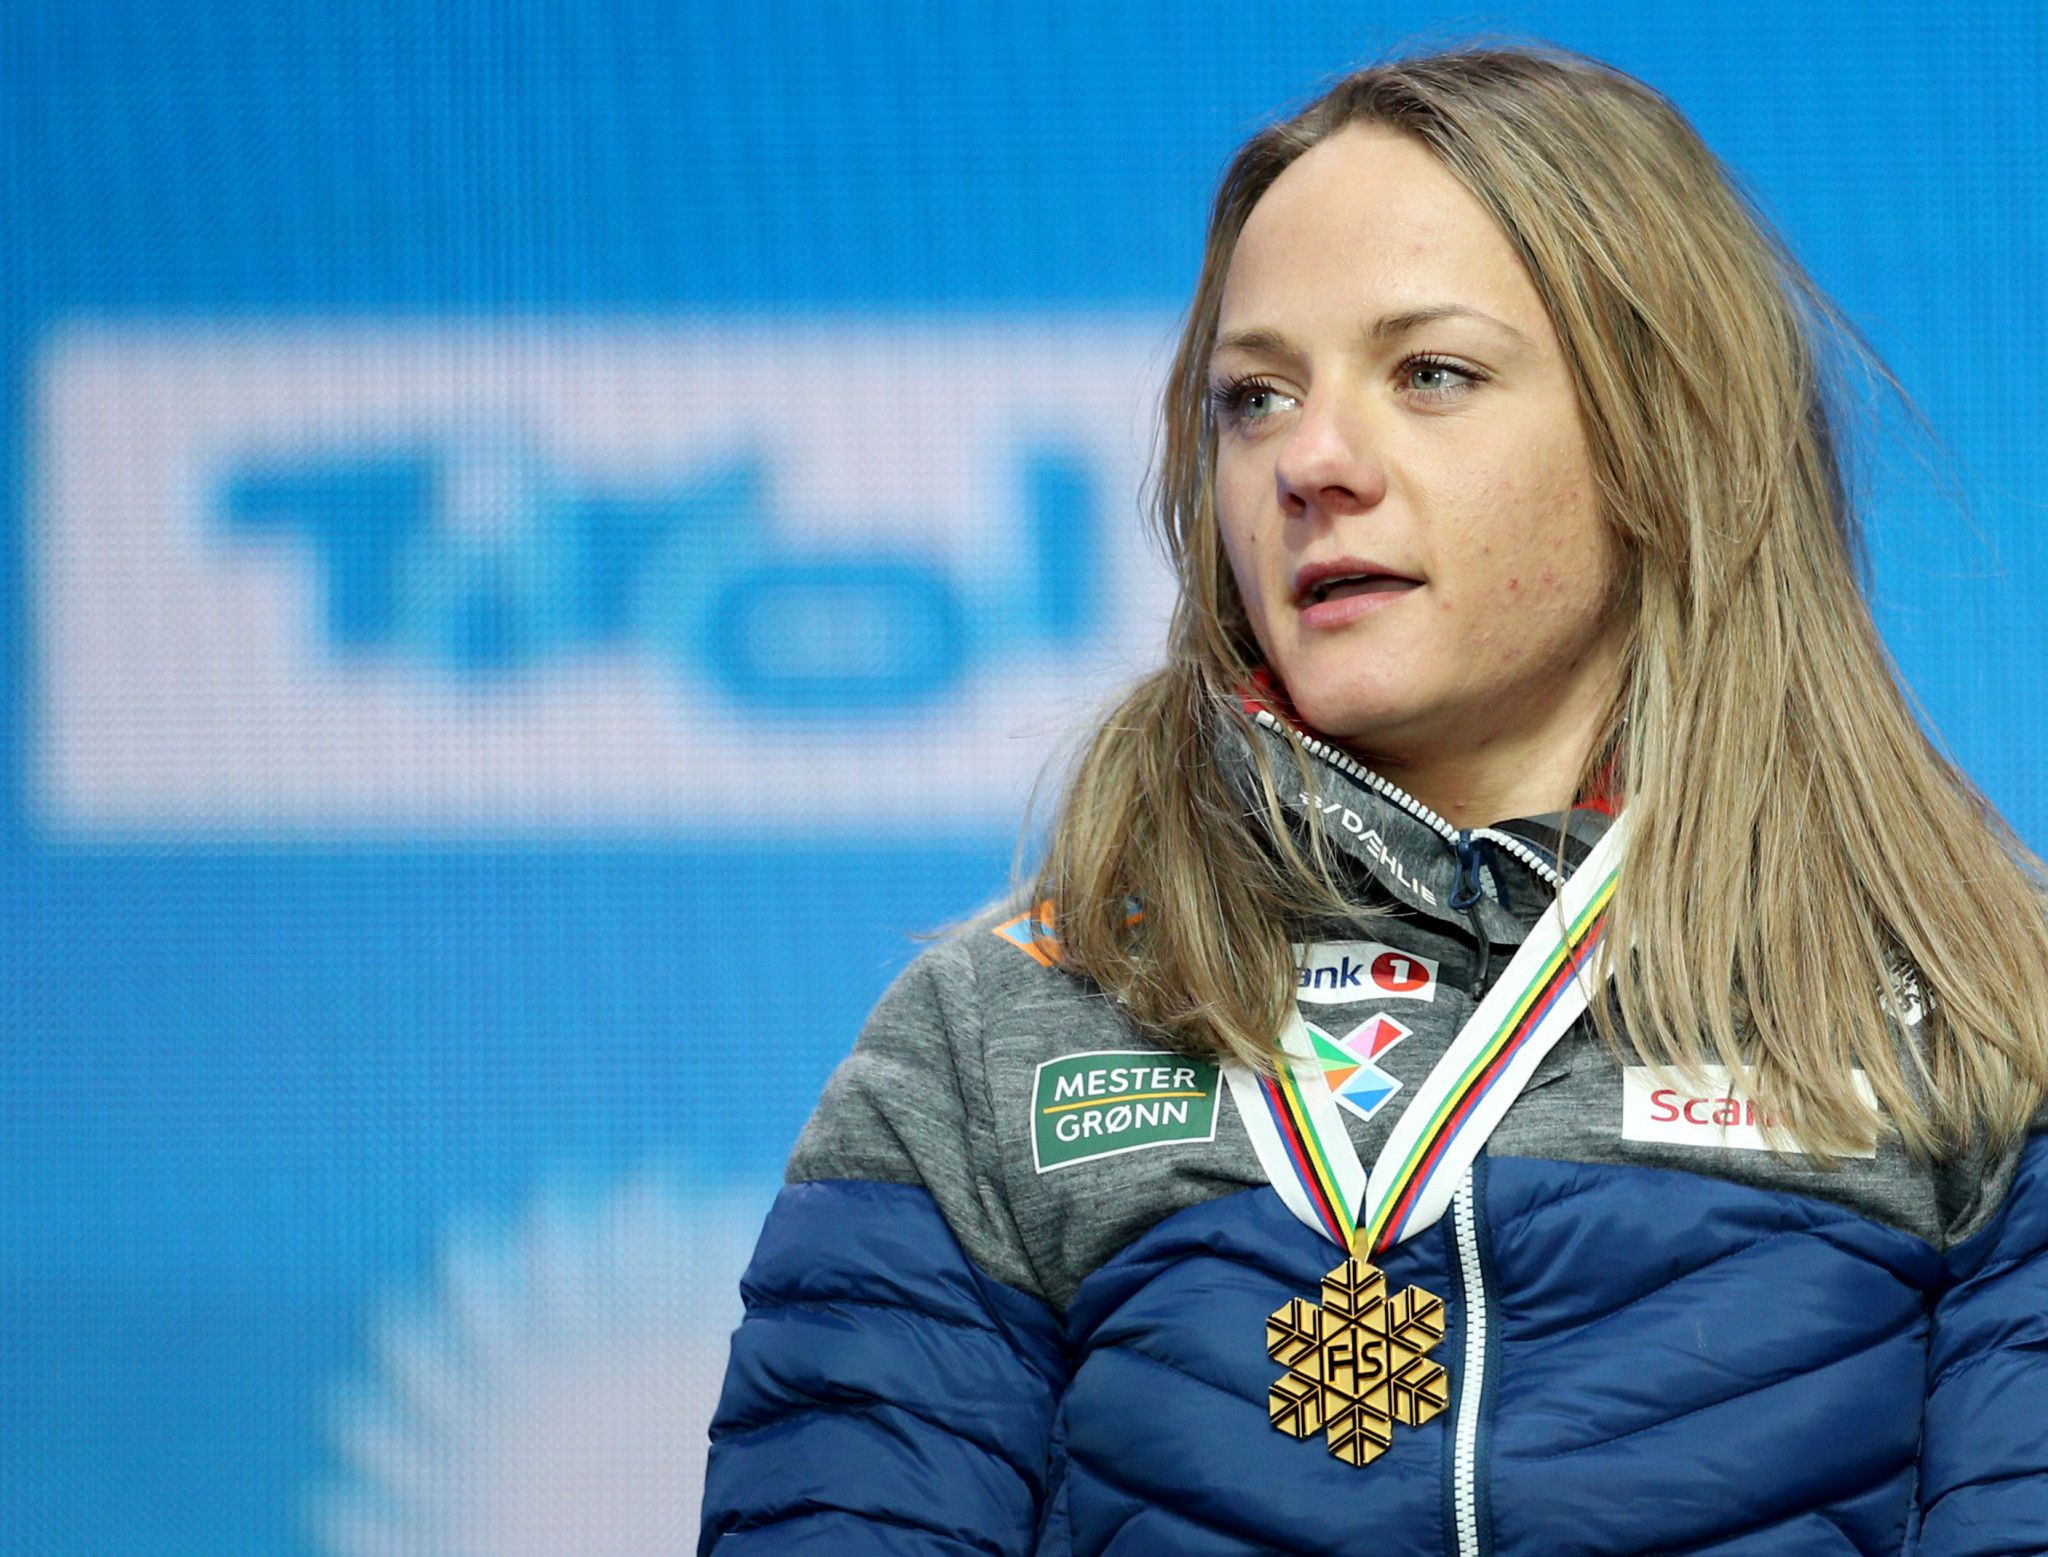 His compatriot Maiken Caspersen Falla received her medal for winning the women's event ©Getty Images